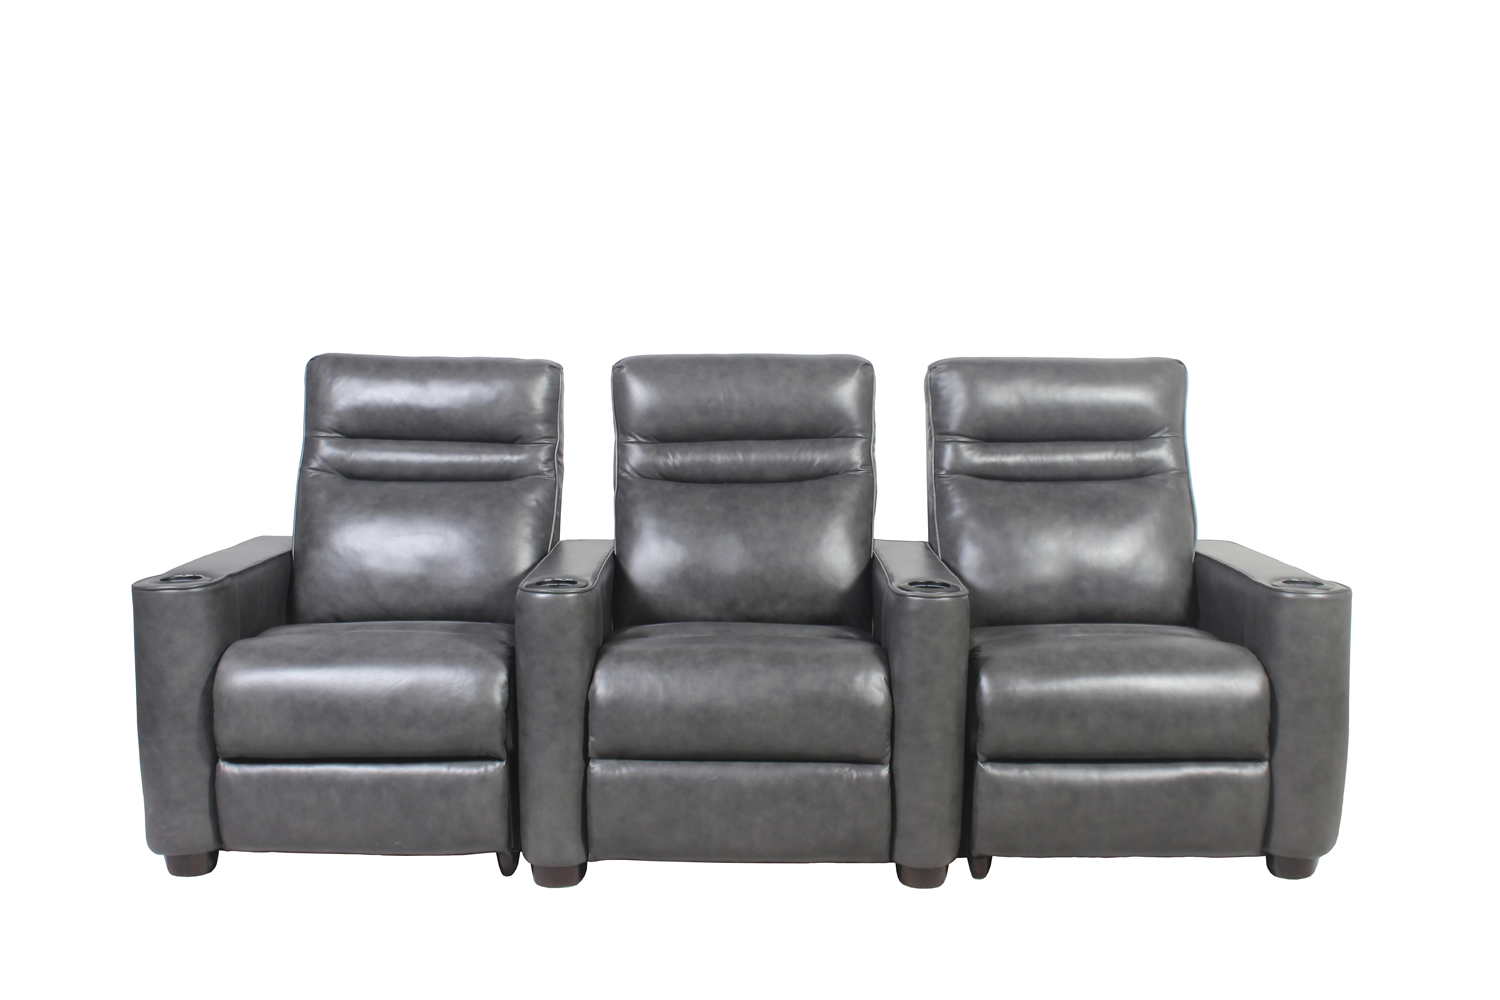 Rowone Home Entertainment Throughout Mansfield Cocoa Leather Sofa Chairs (Image 17 of 20)